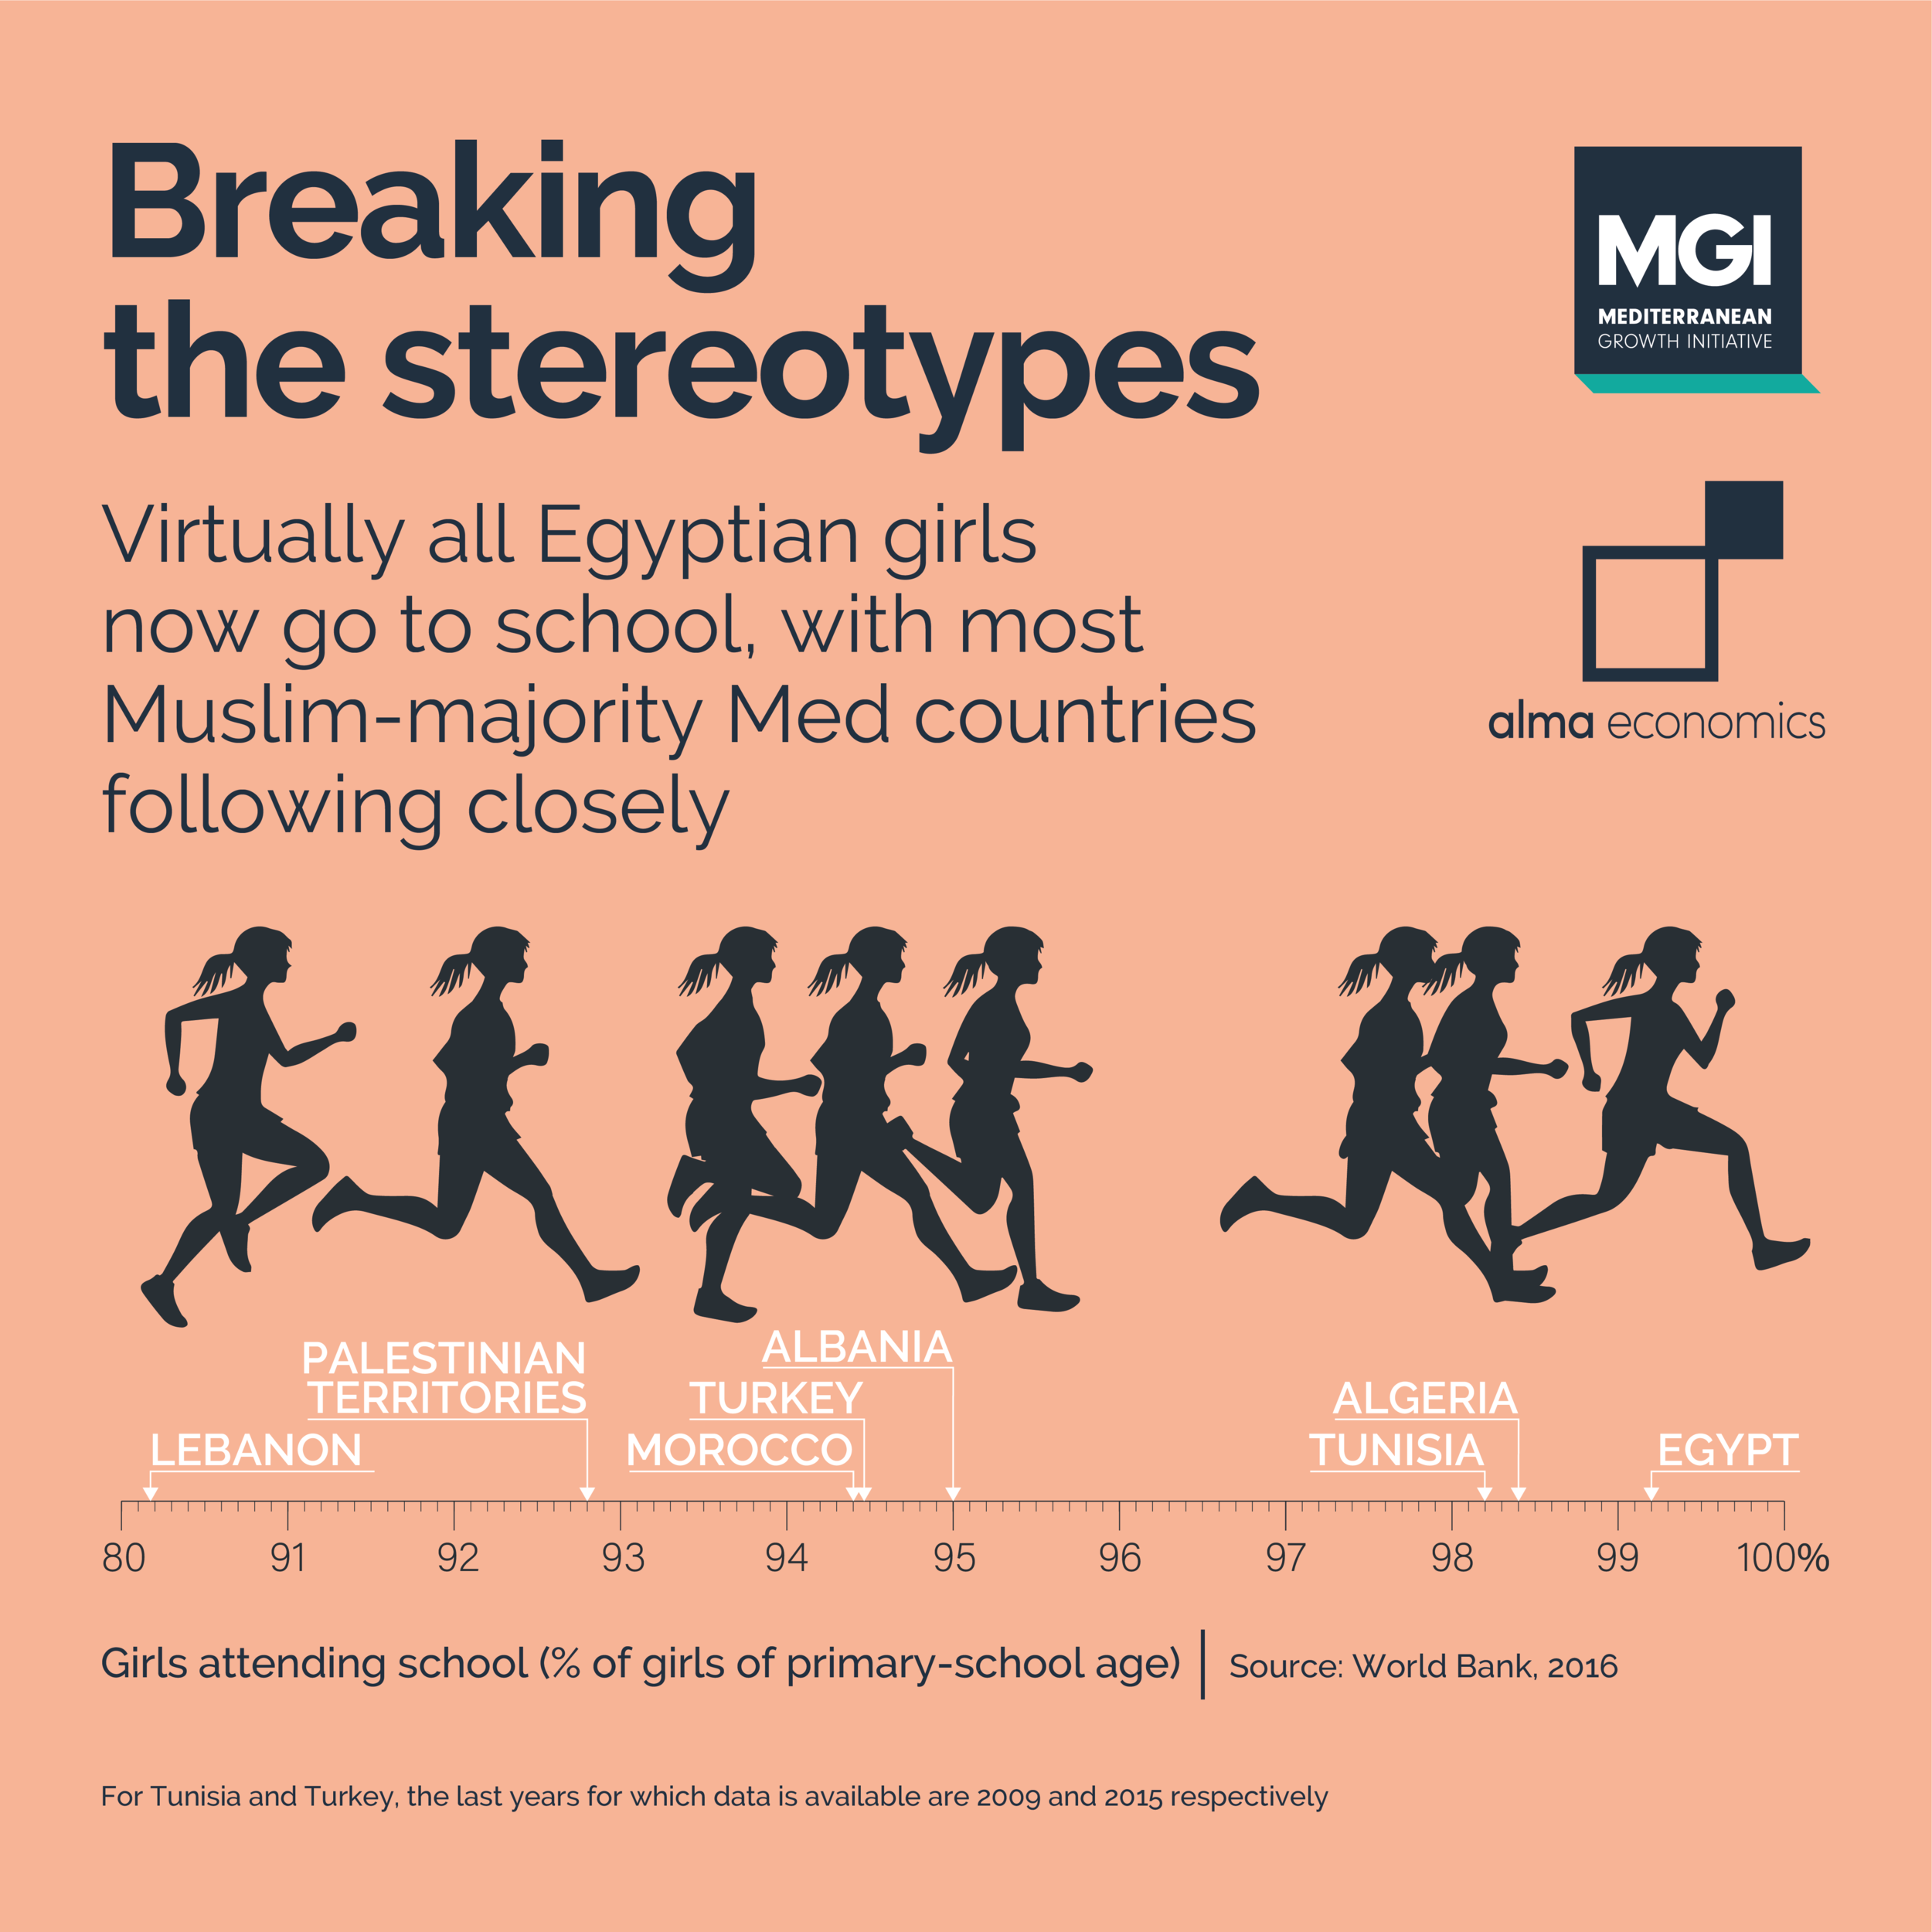 Breaking the stereotypes - Egypt has the highest female participation in primary education amongst Muslim-majority Med countries, while more than 98% of girls now go to school in Algeria and Tunisia